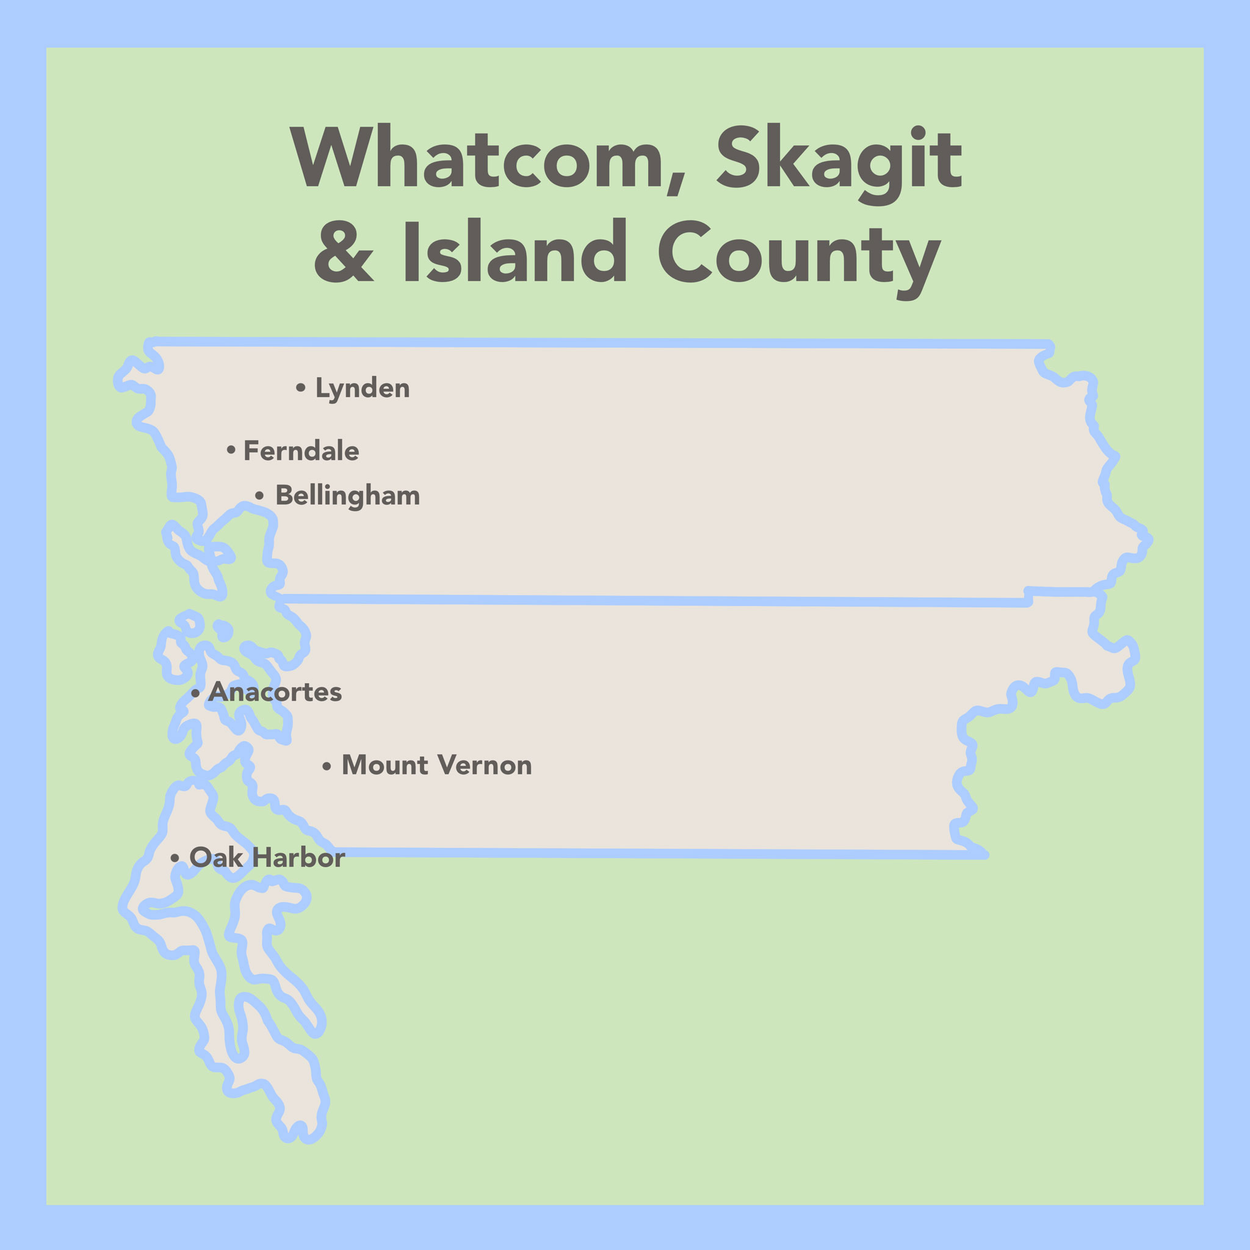 WHATCOM & SKAGIT COUNTIES